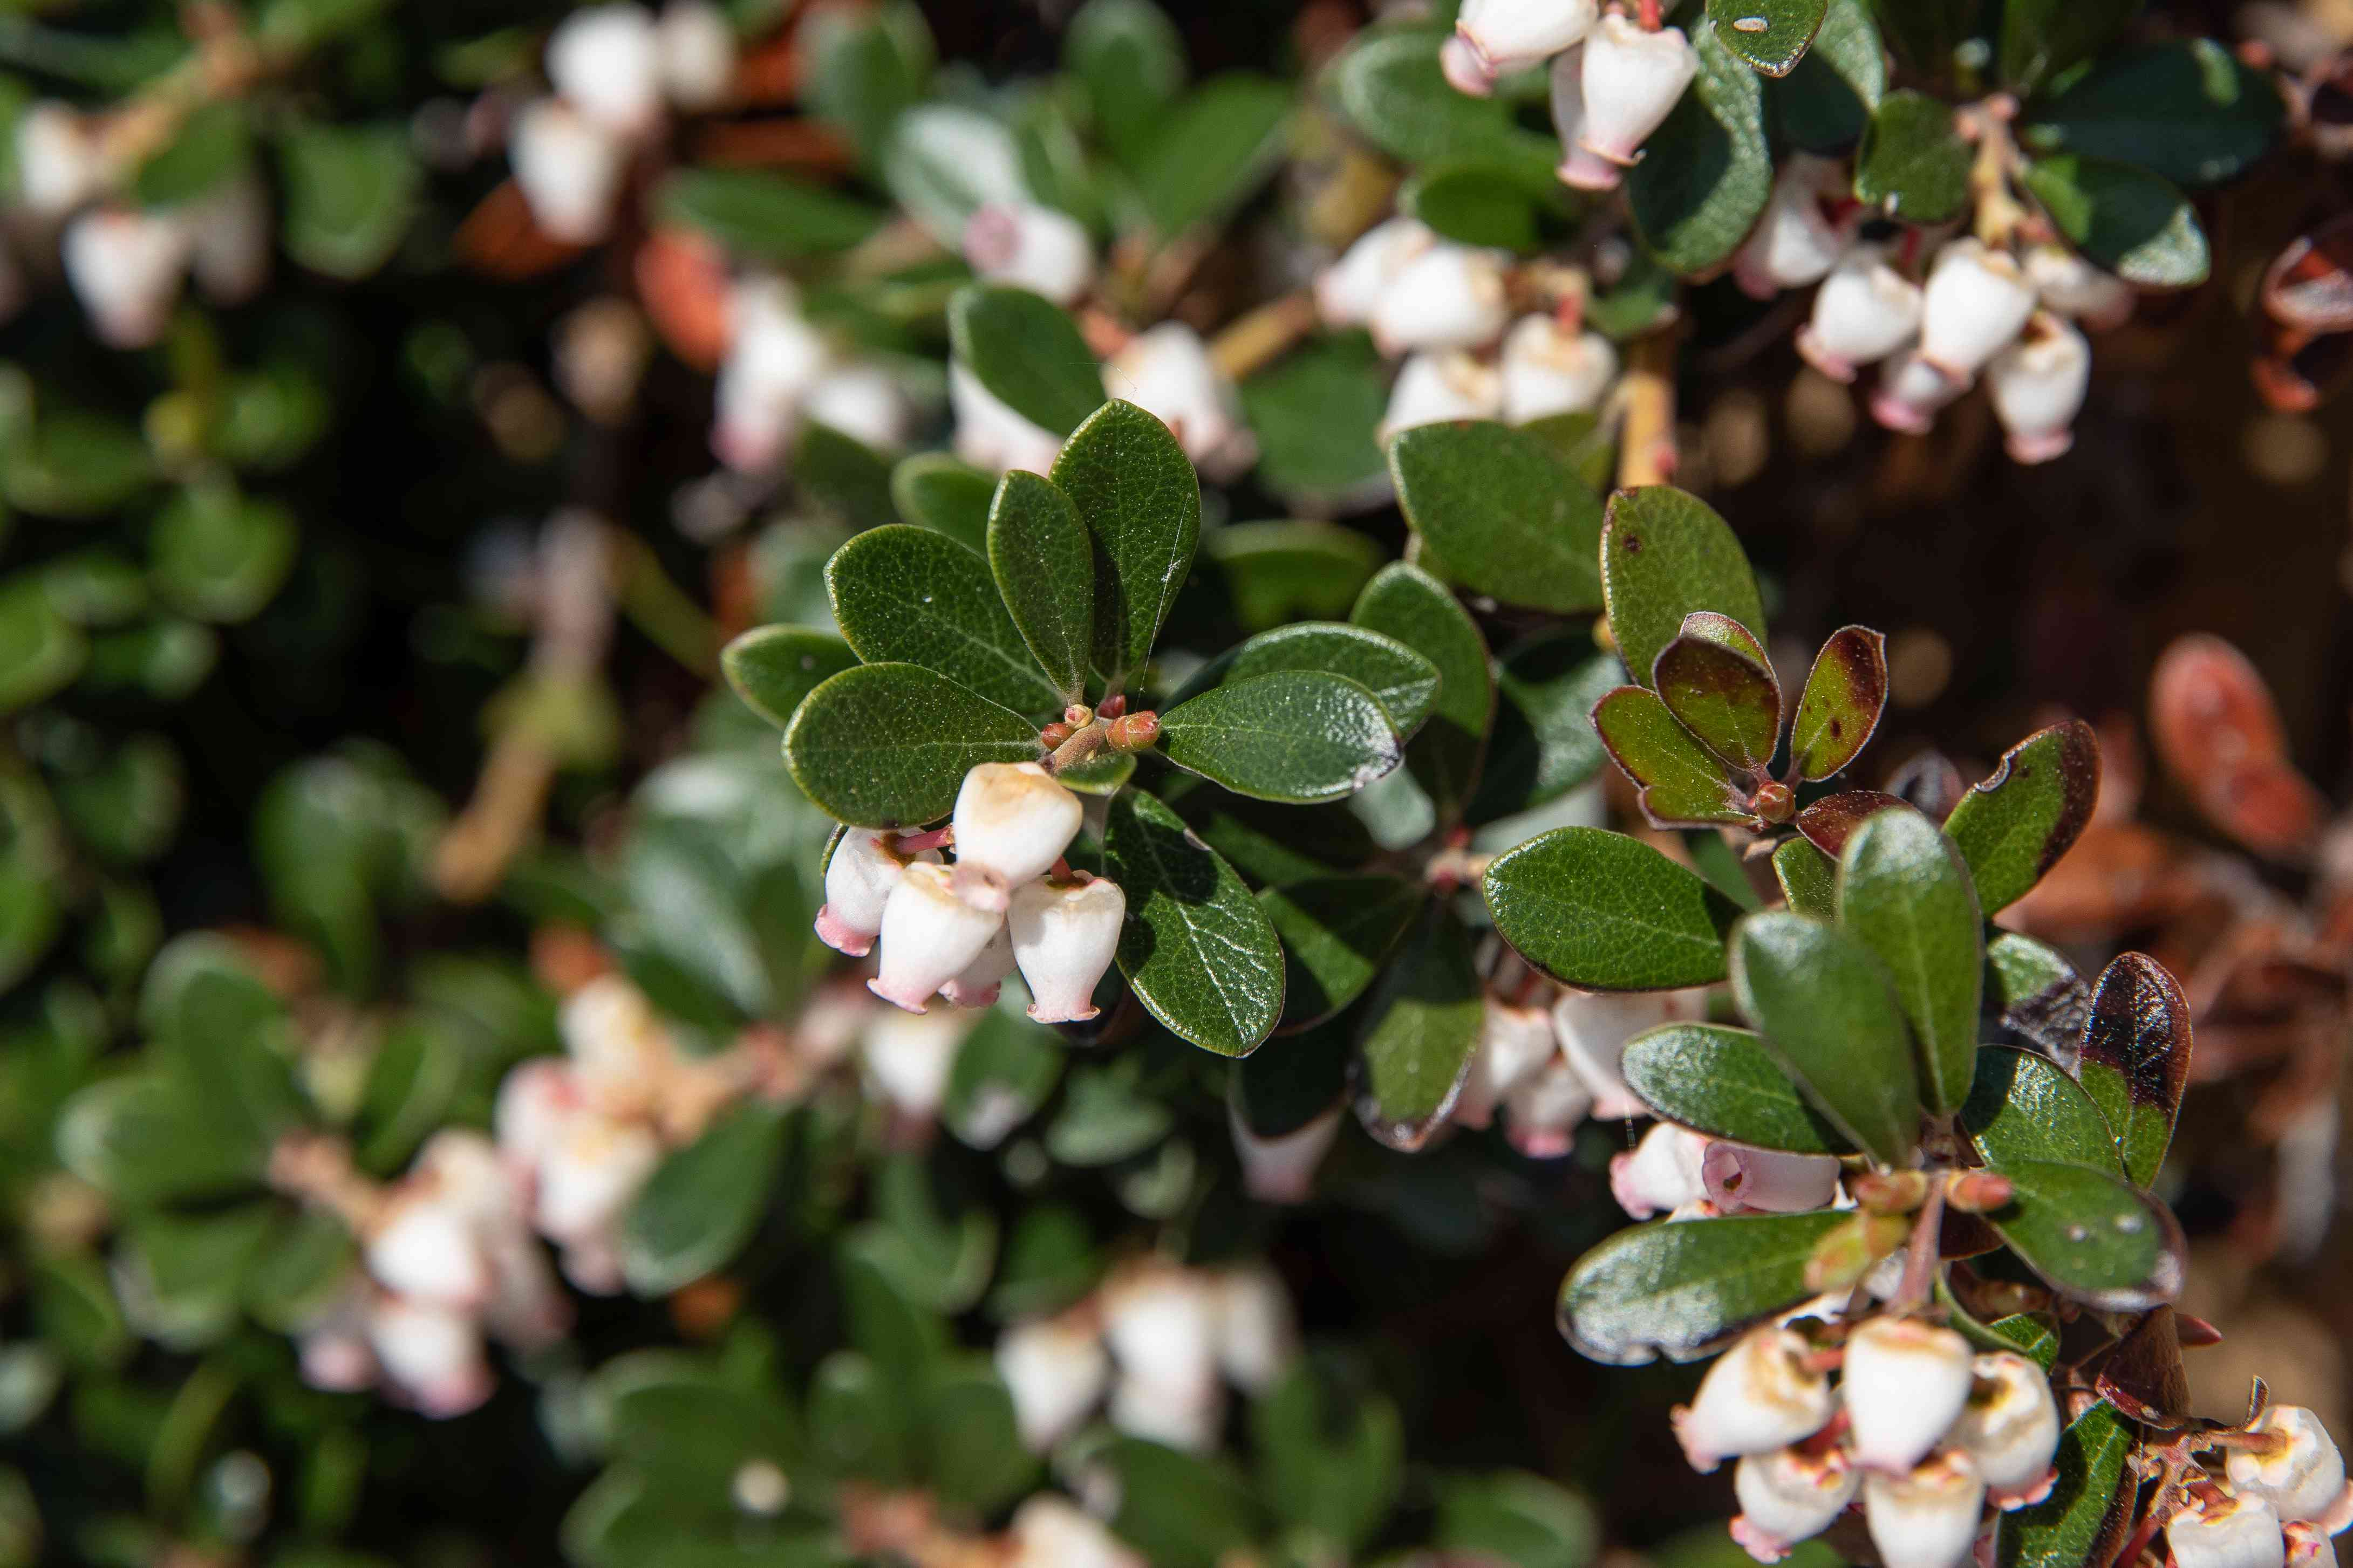 Bearberry sub-shrub branches with dark green leaves and small white bell-shaped flowers in sunlight closeup